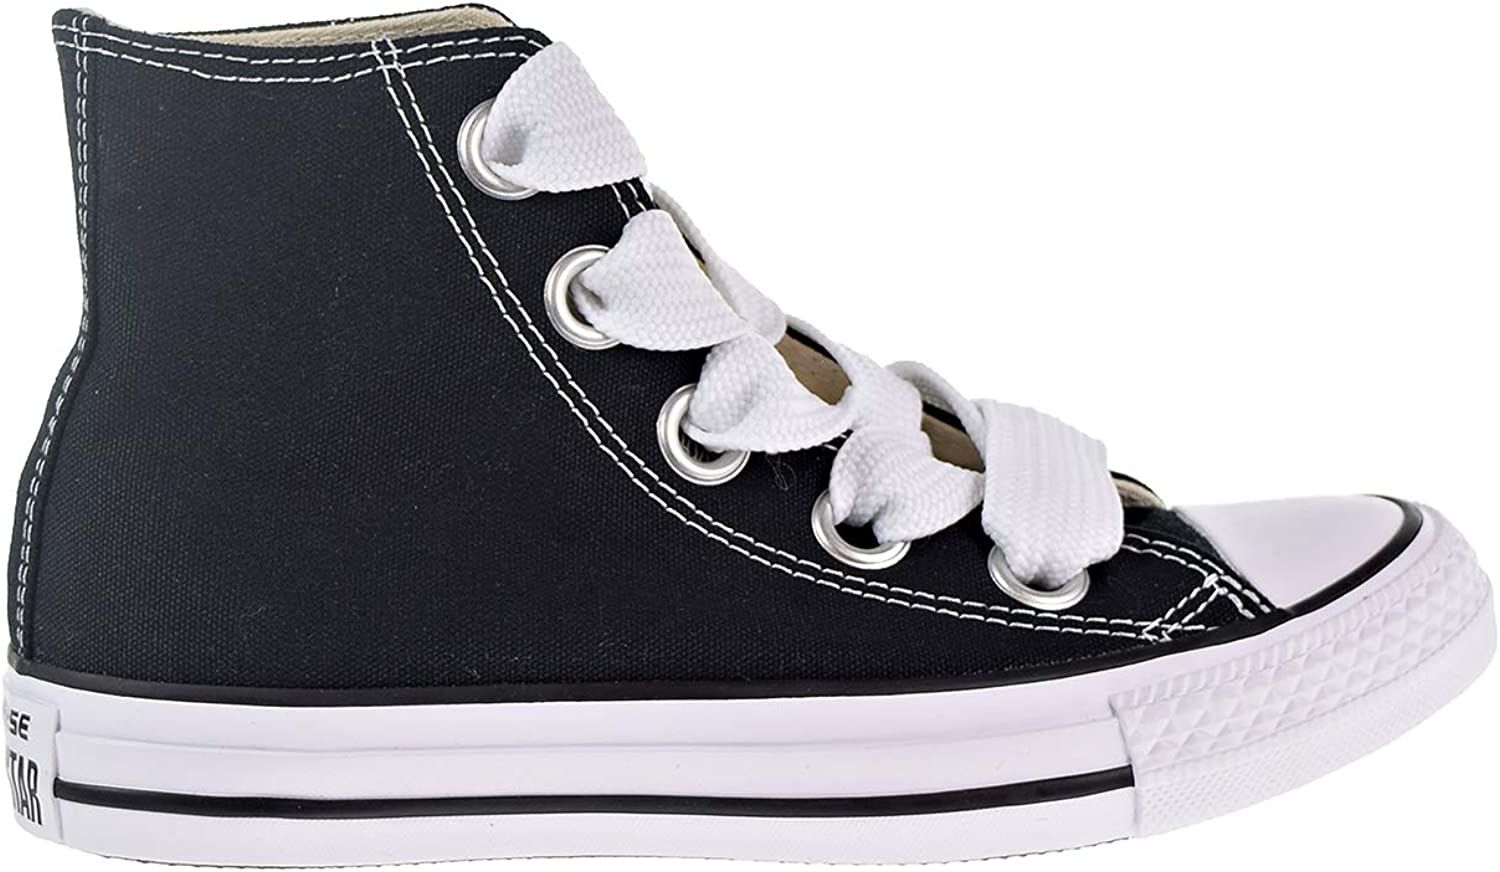 Converse Chuck Taylor All Star Canvas Big Eyelets Hi Women's Classic shoes